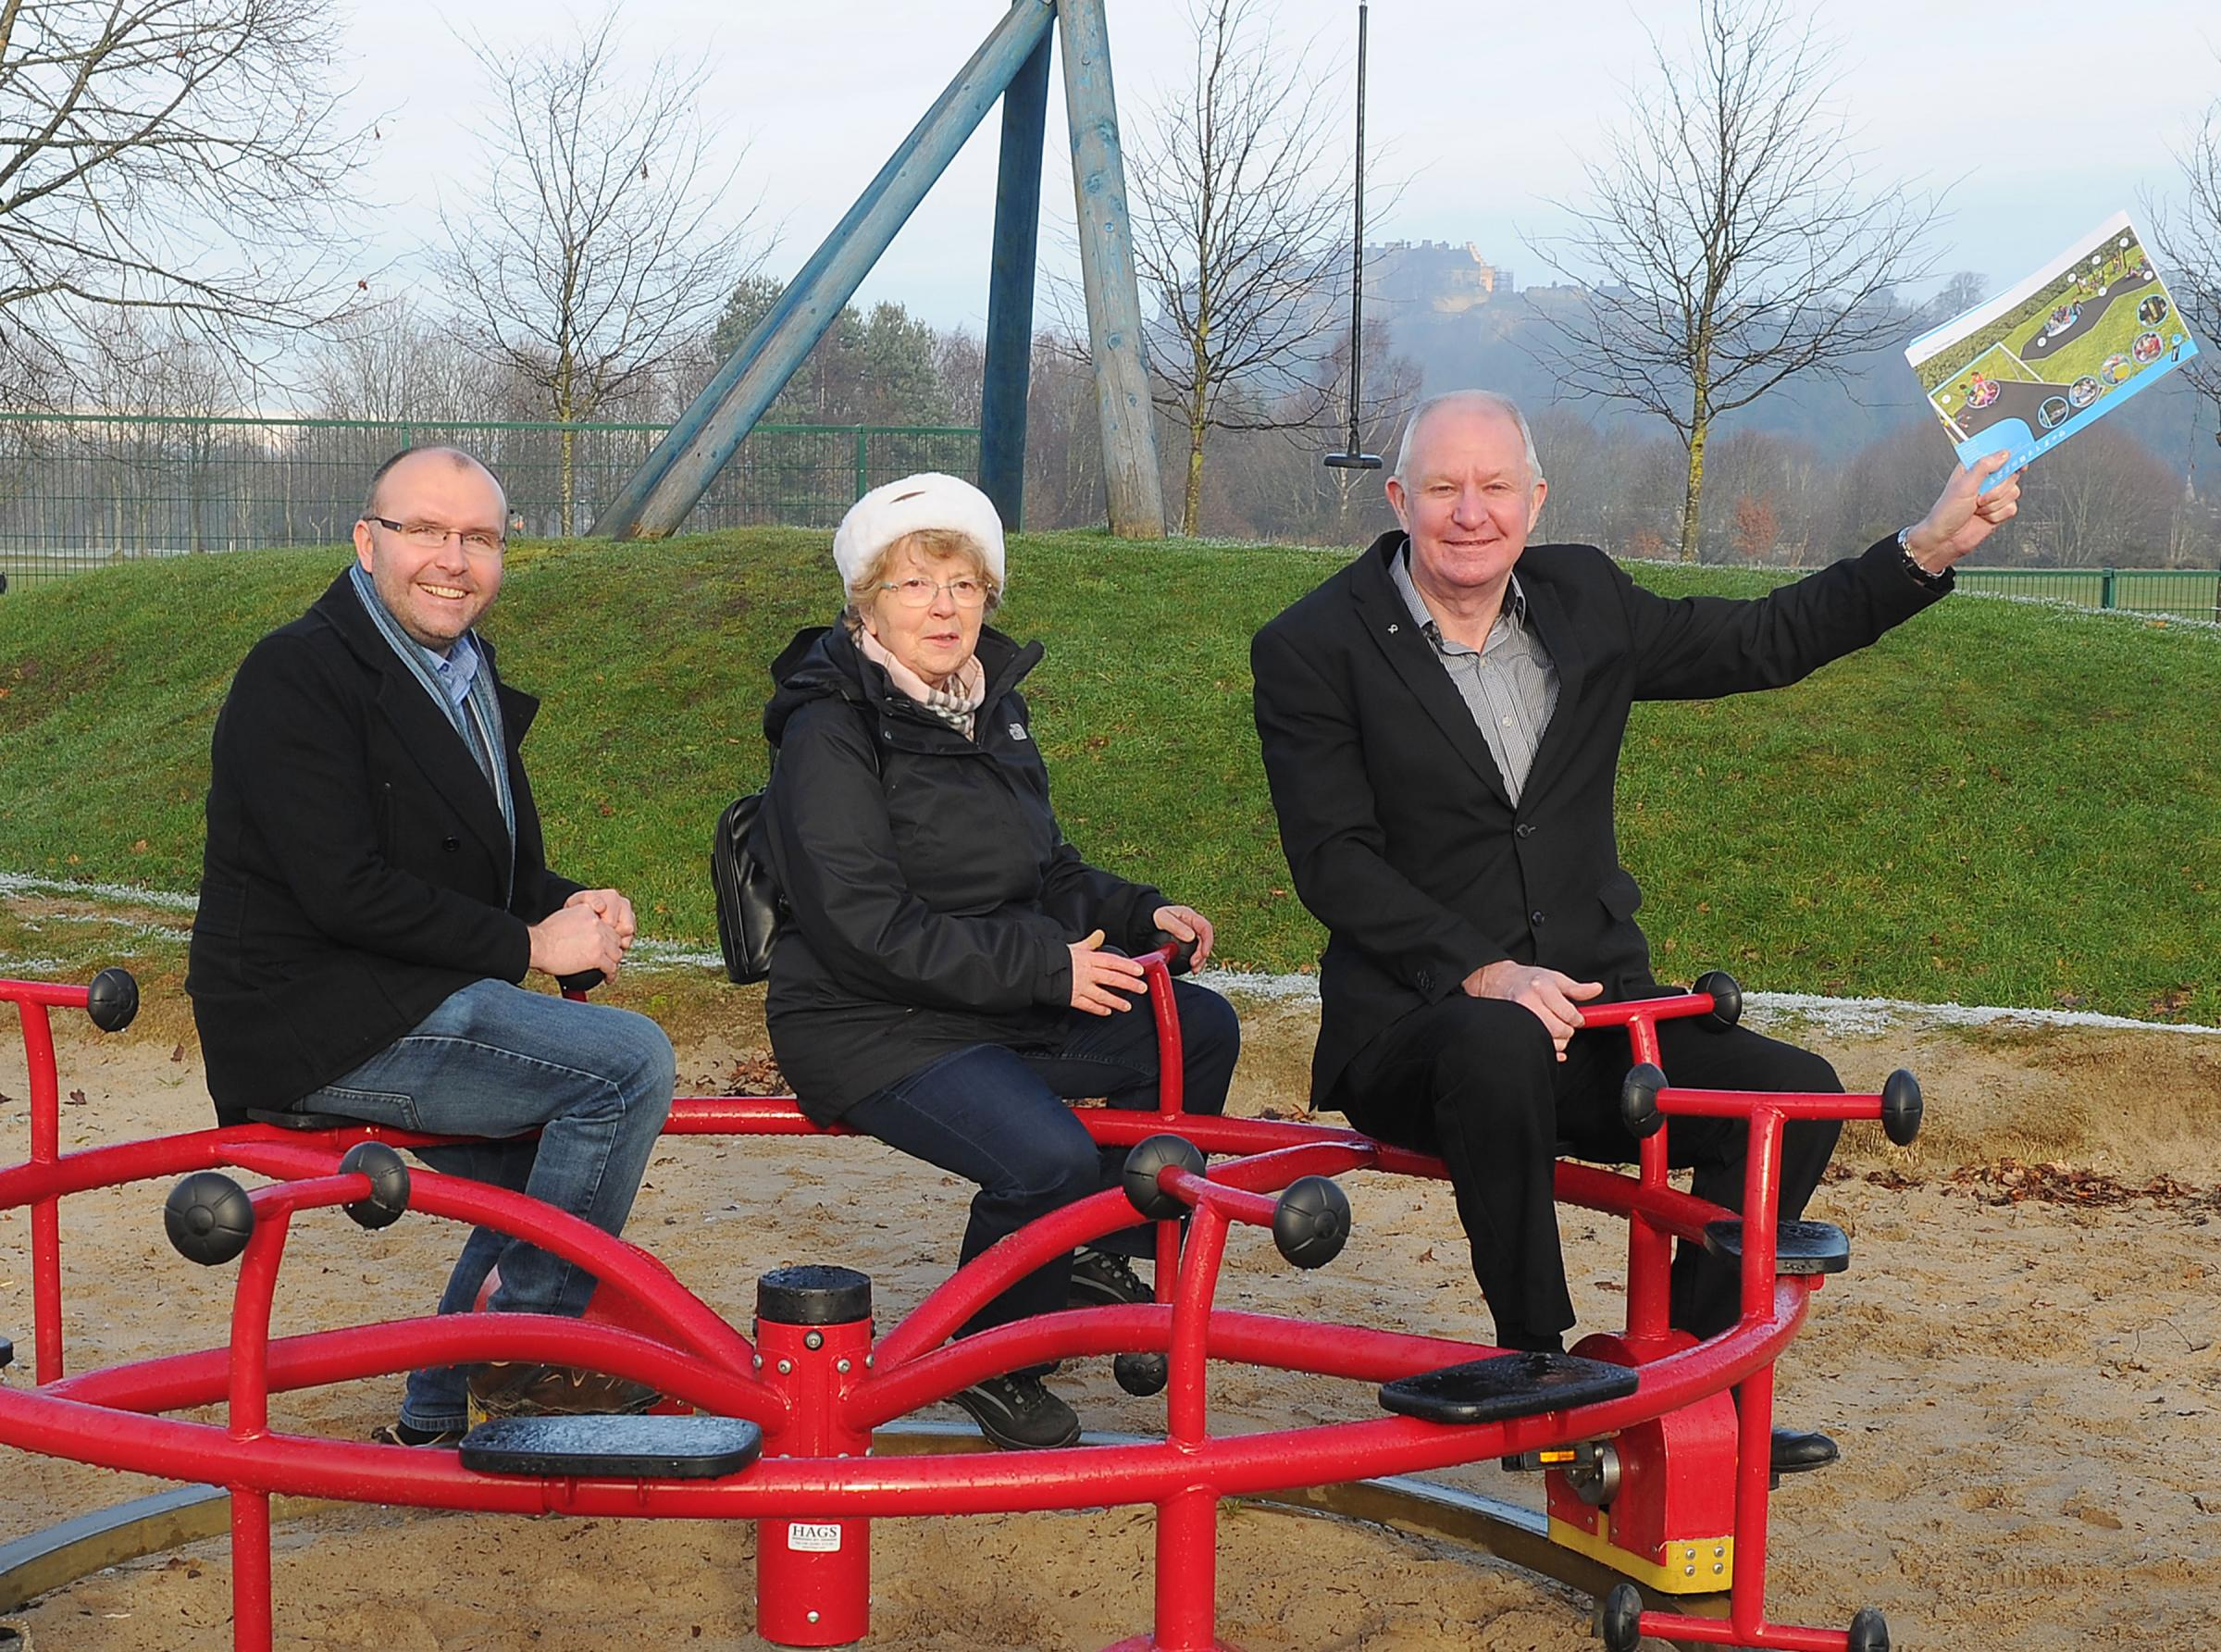 Cllr Jim Thomson, Dorothy Wilson from Friends of King's Park and Cllr Danny Gibson showcase design samples of how the new equipment could look